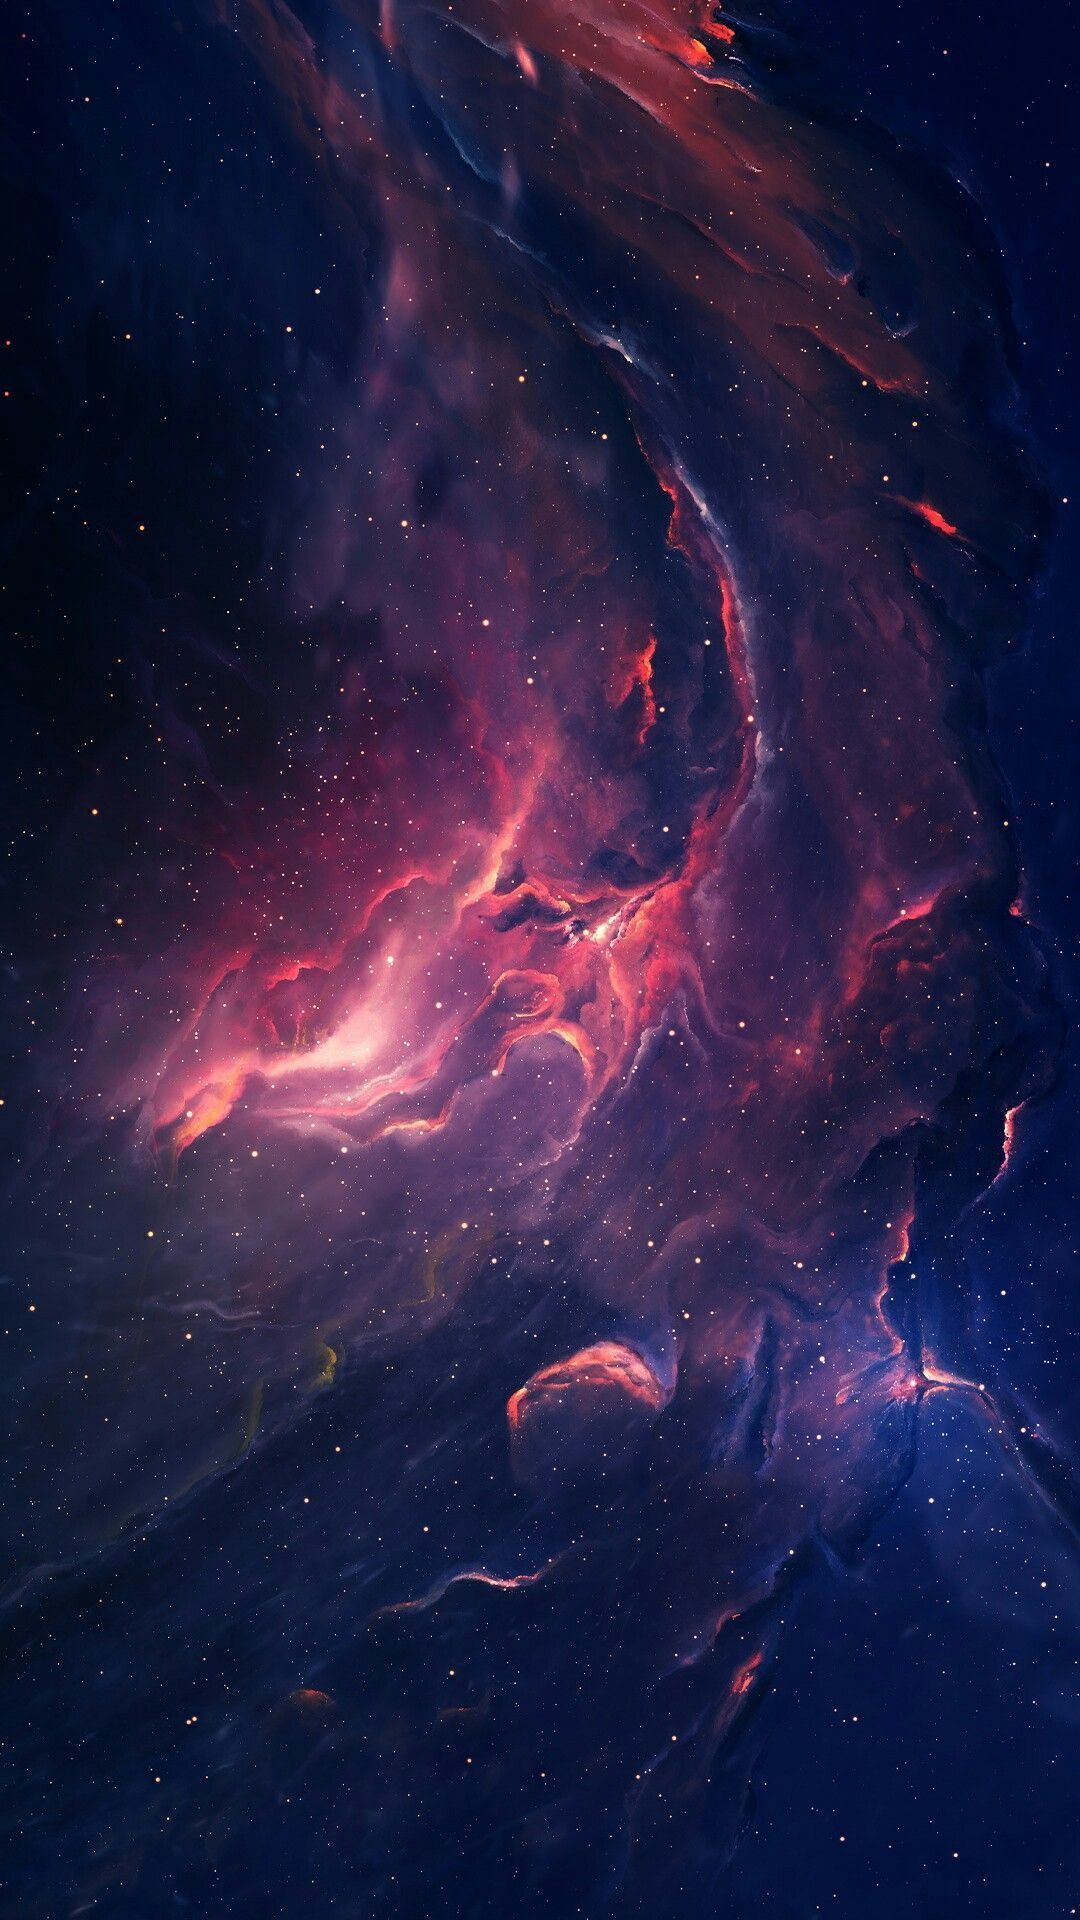 Sky Nebula Outer Space Geological Phenomenon Astronomical Object Atmosphere Cellphone In 2020 Space Iphone Wallpaper Iphone Wallpaper Sky Galaxy Wallpaper